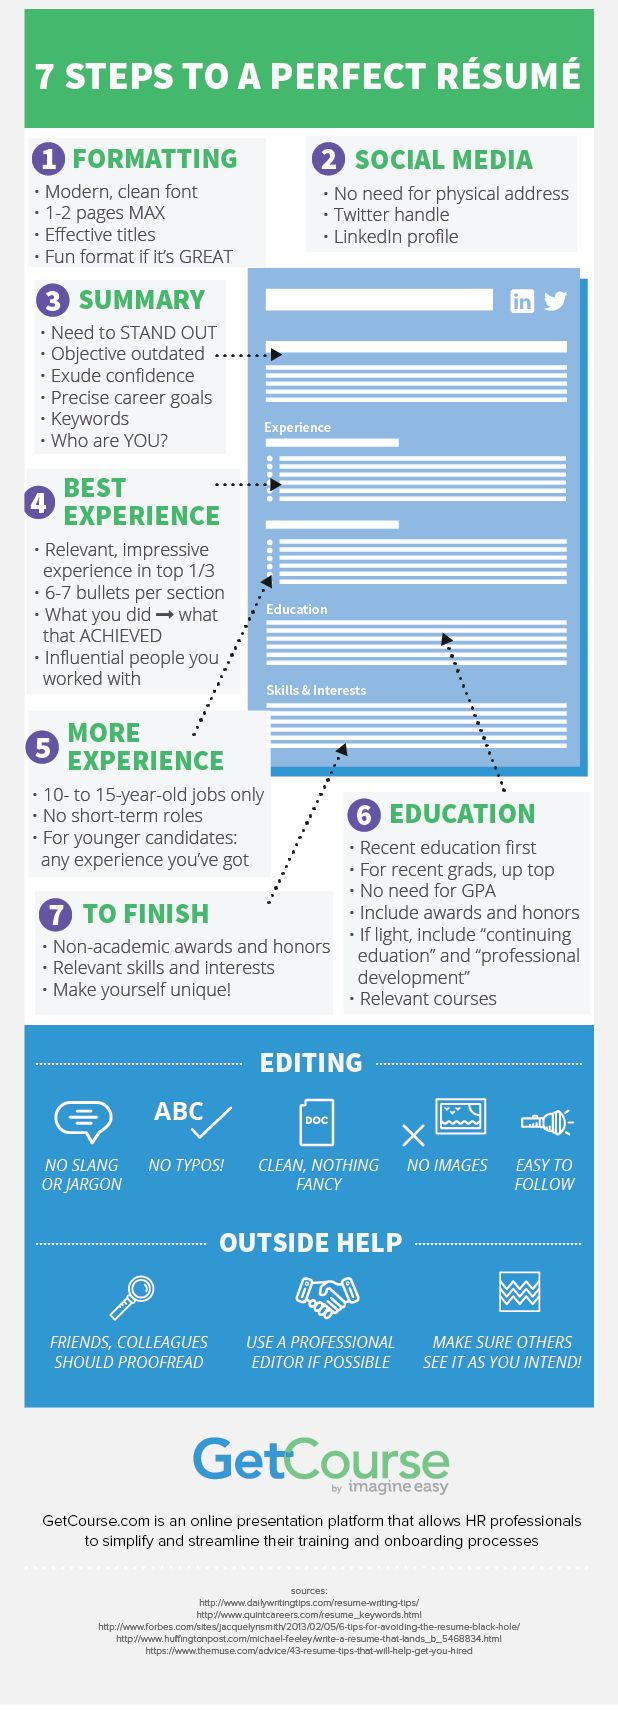 7 Steps to a Perfect Resume!